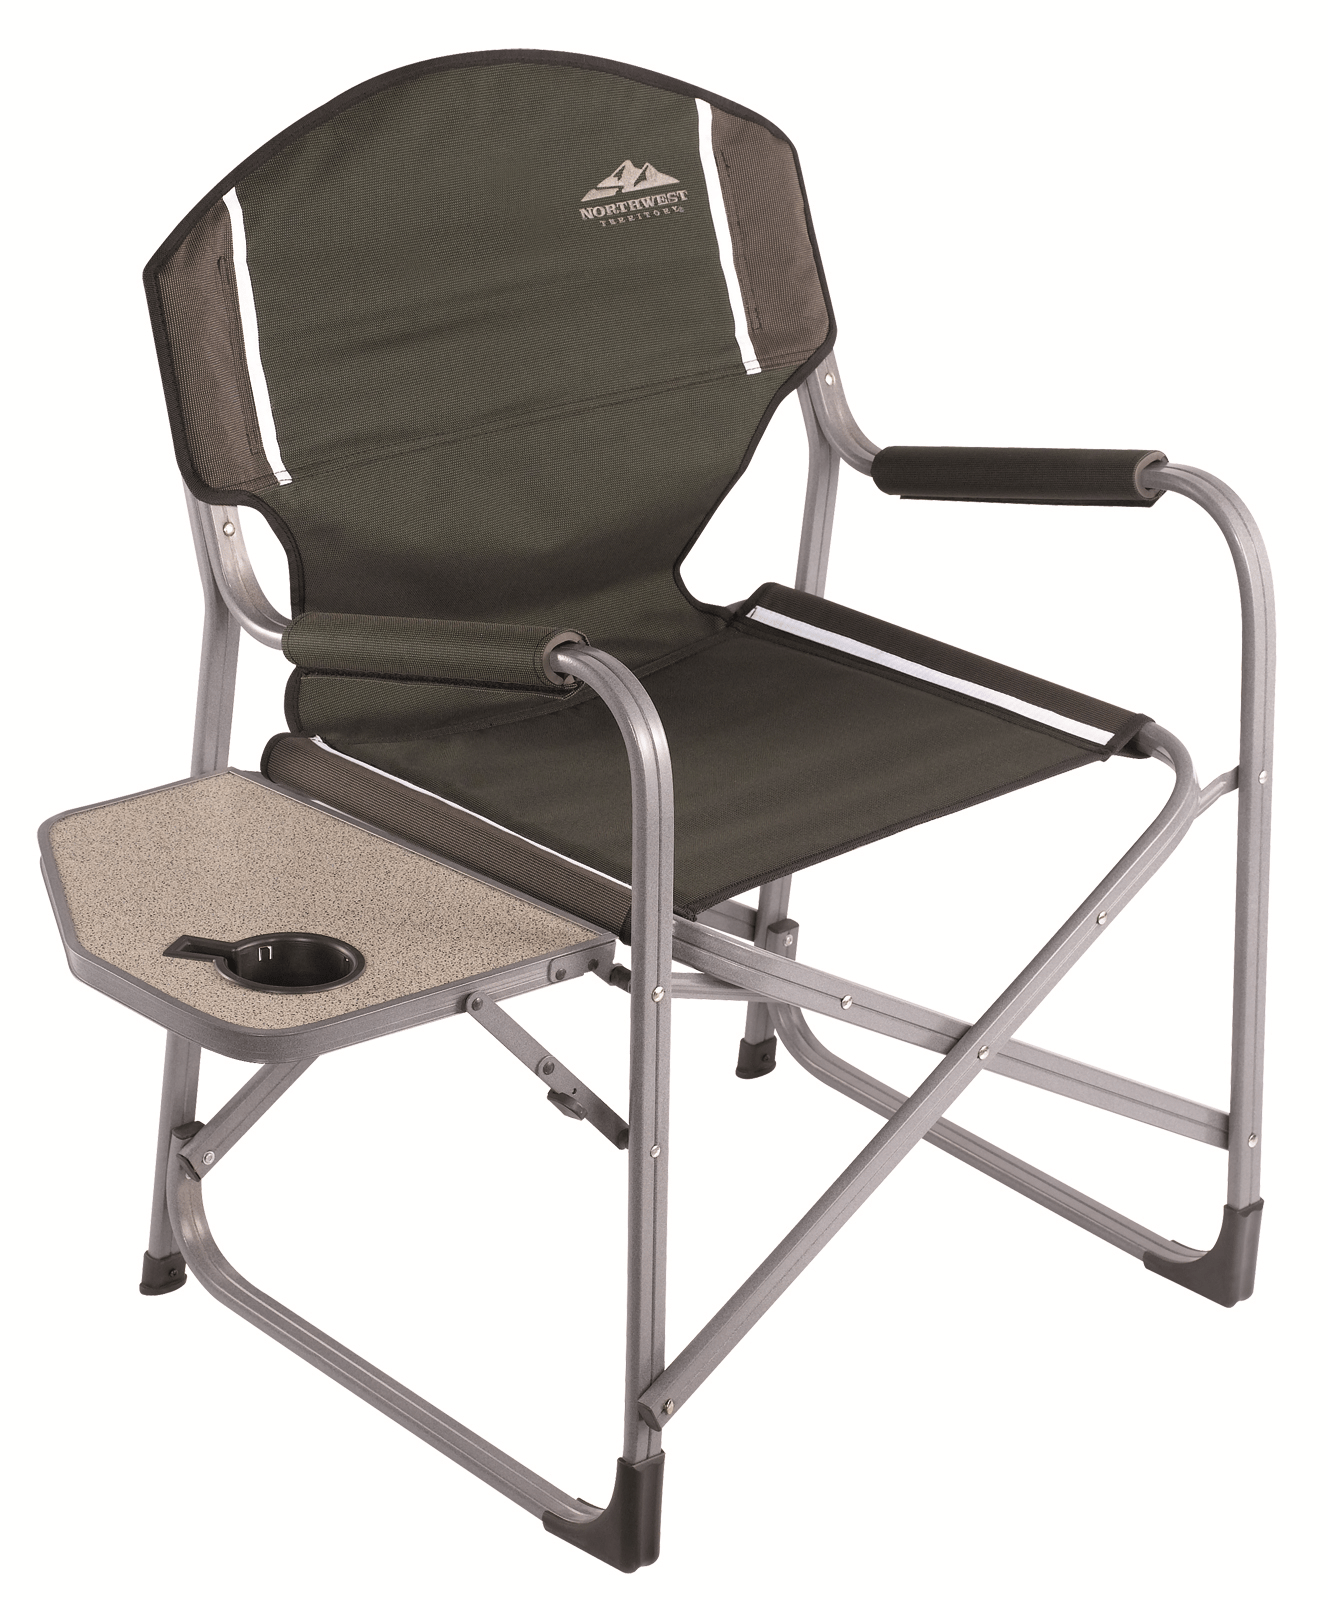 Folding Camp Chair With Side Table Check Out Northwest Territory Director S Chair With Fold Up Side Table Shopyourway